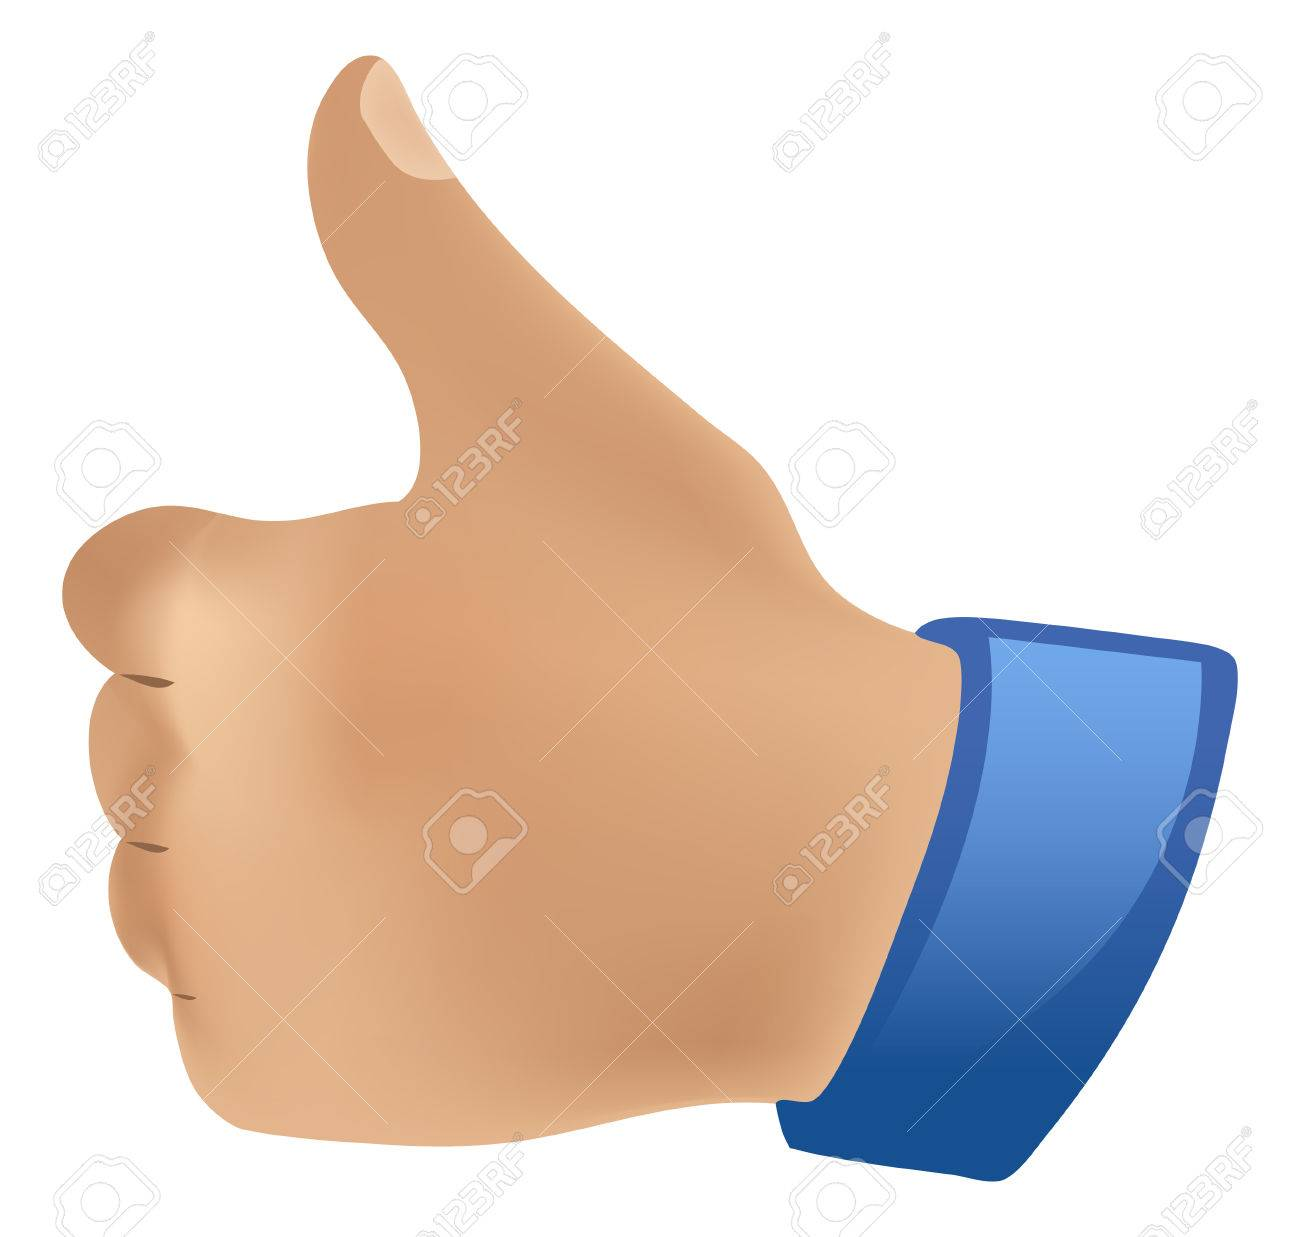 thumbs up down icon - 26309888